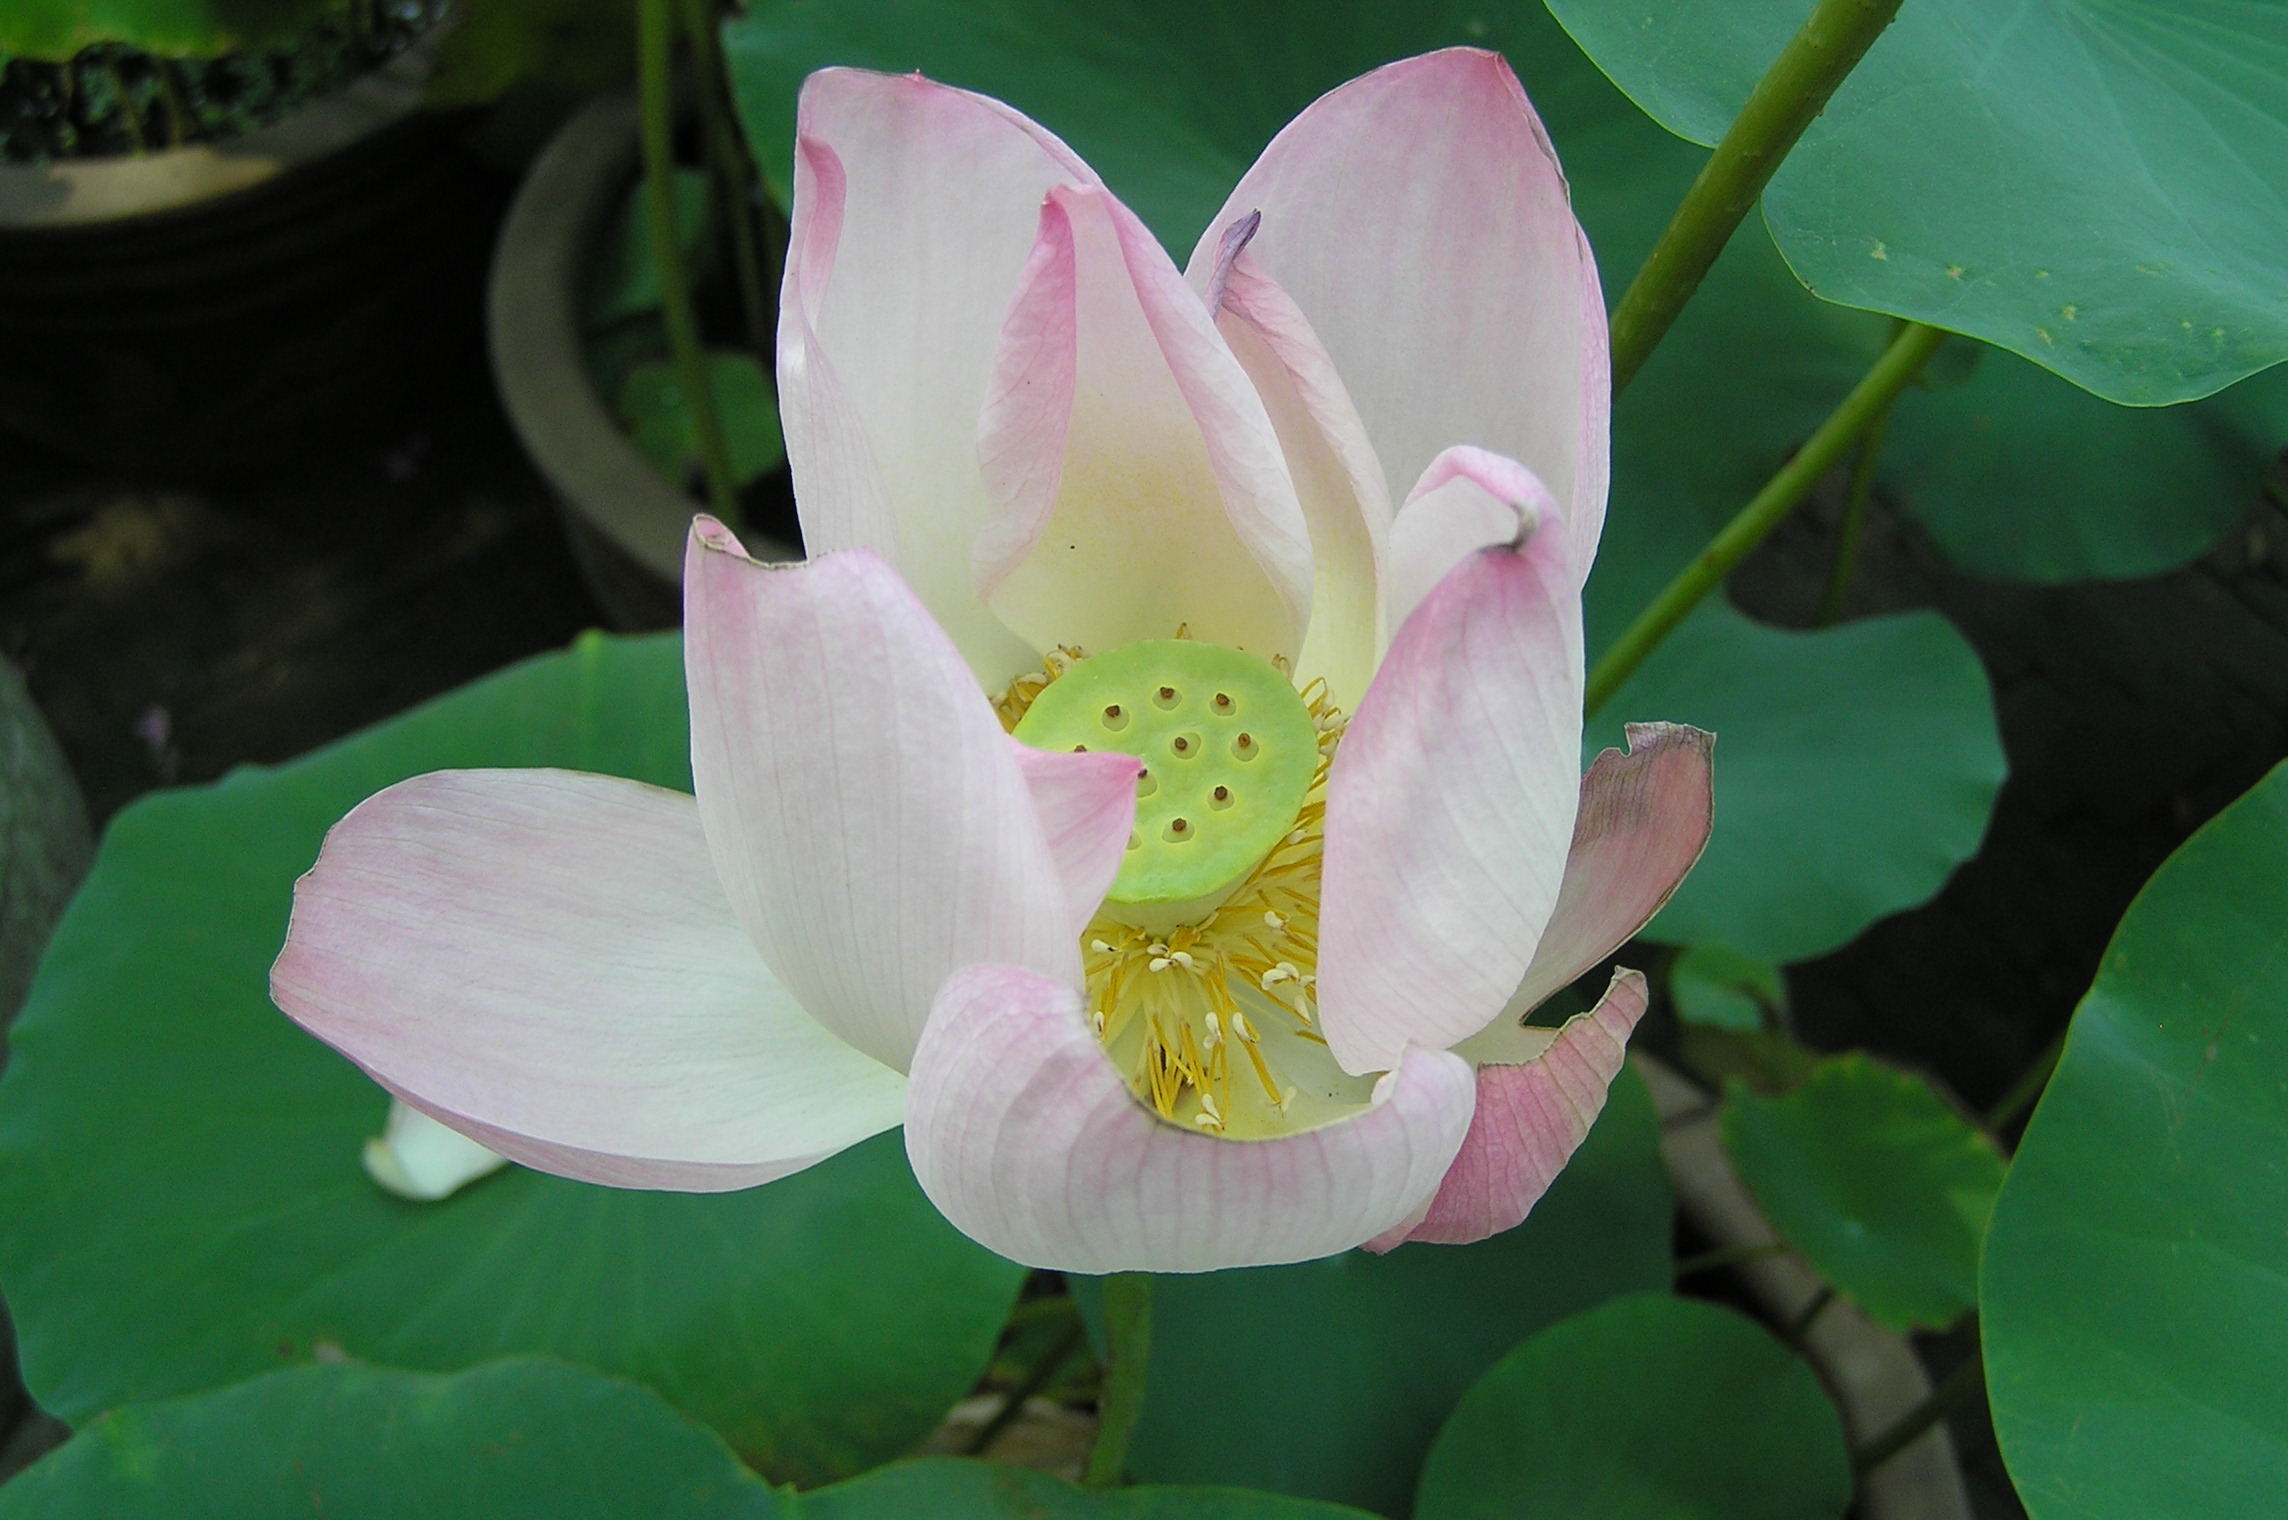 Lotus_flower_%28Suzhou%2C_China%29.jpg